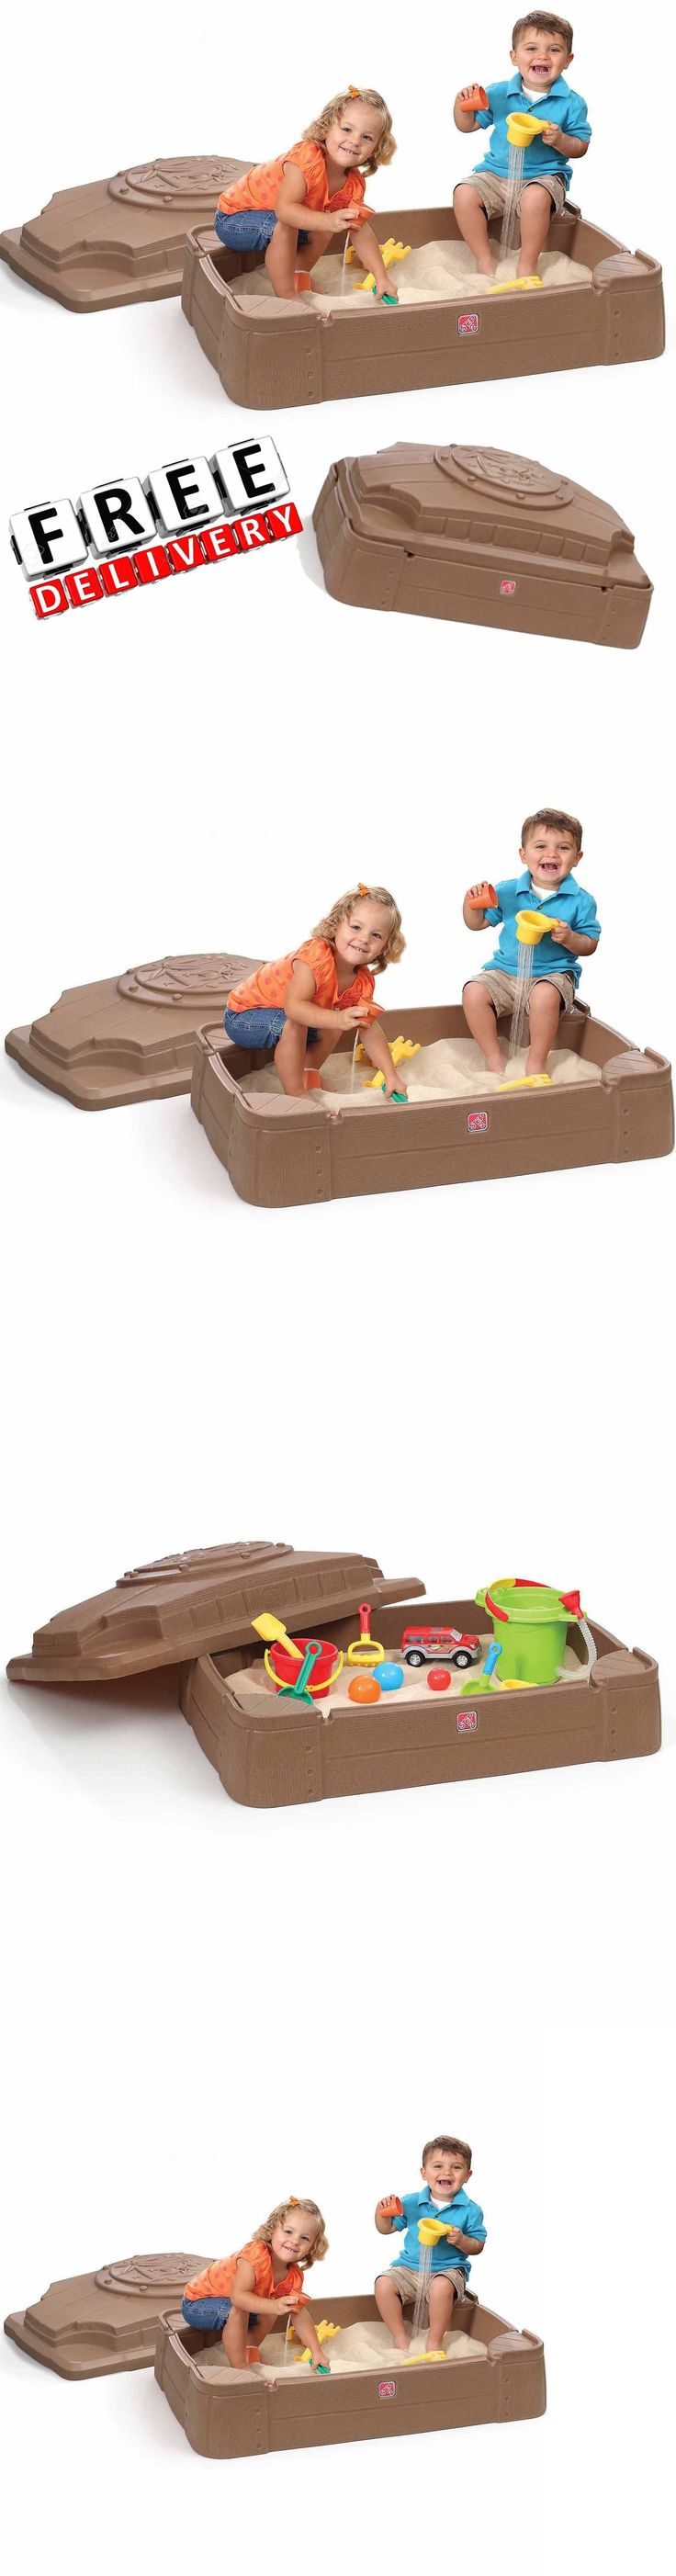 Sandbox Toys and Sandboxes 145990: Sandbox With Cover Little Tikes Play Outdoor Sand Fun Kid Baby Toy Backyard New -> BUY IT NOW ONLY: $57.99 on eBay!